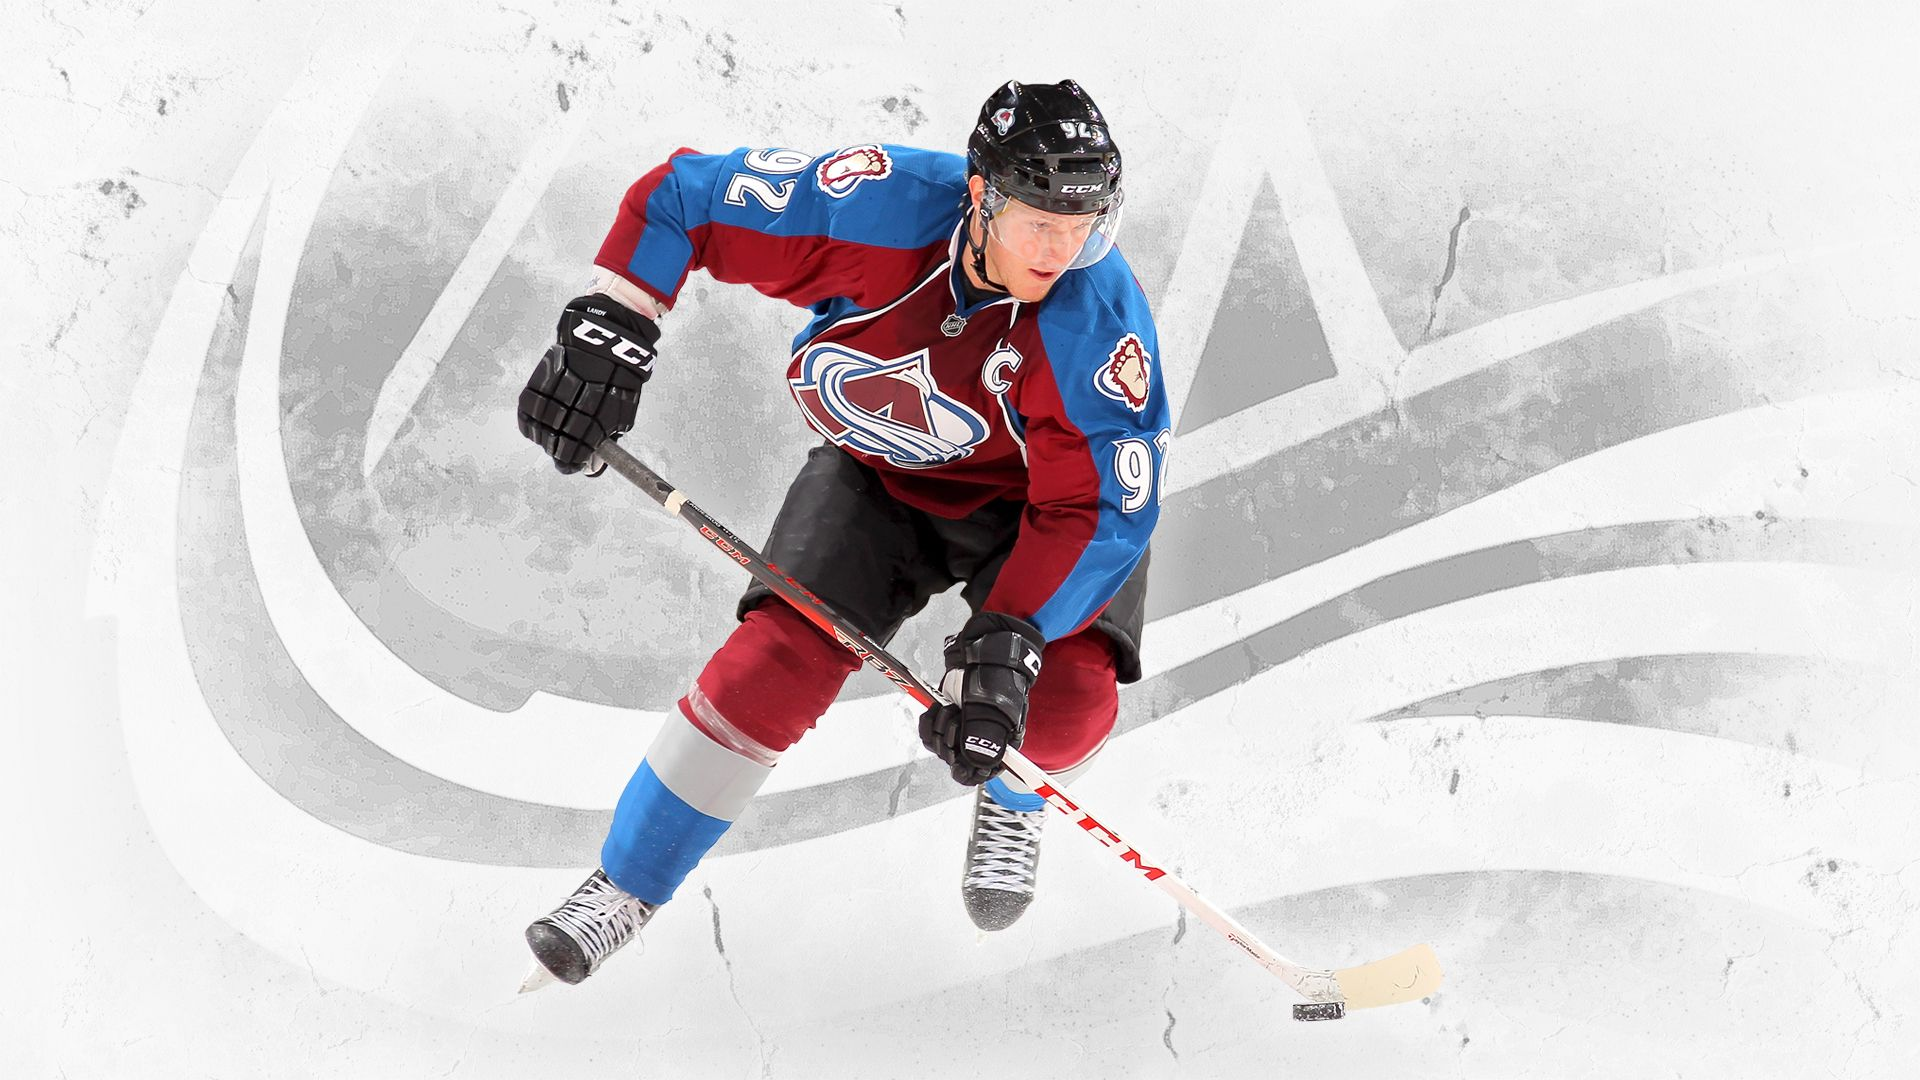 1920x1080 - Colorado Avalanche Wallpapers 20